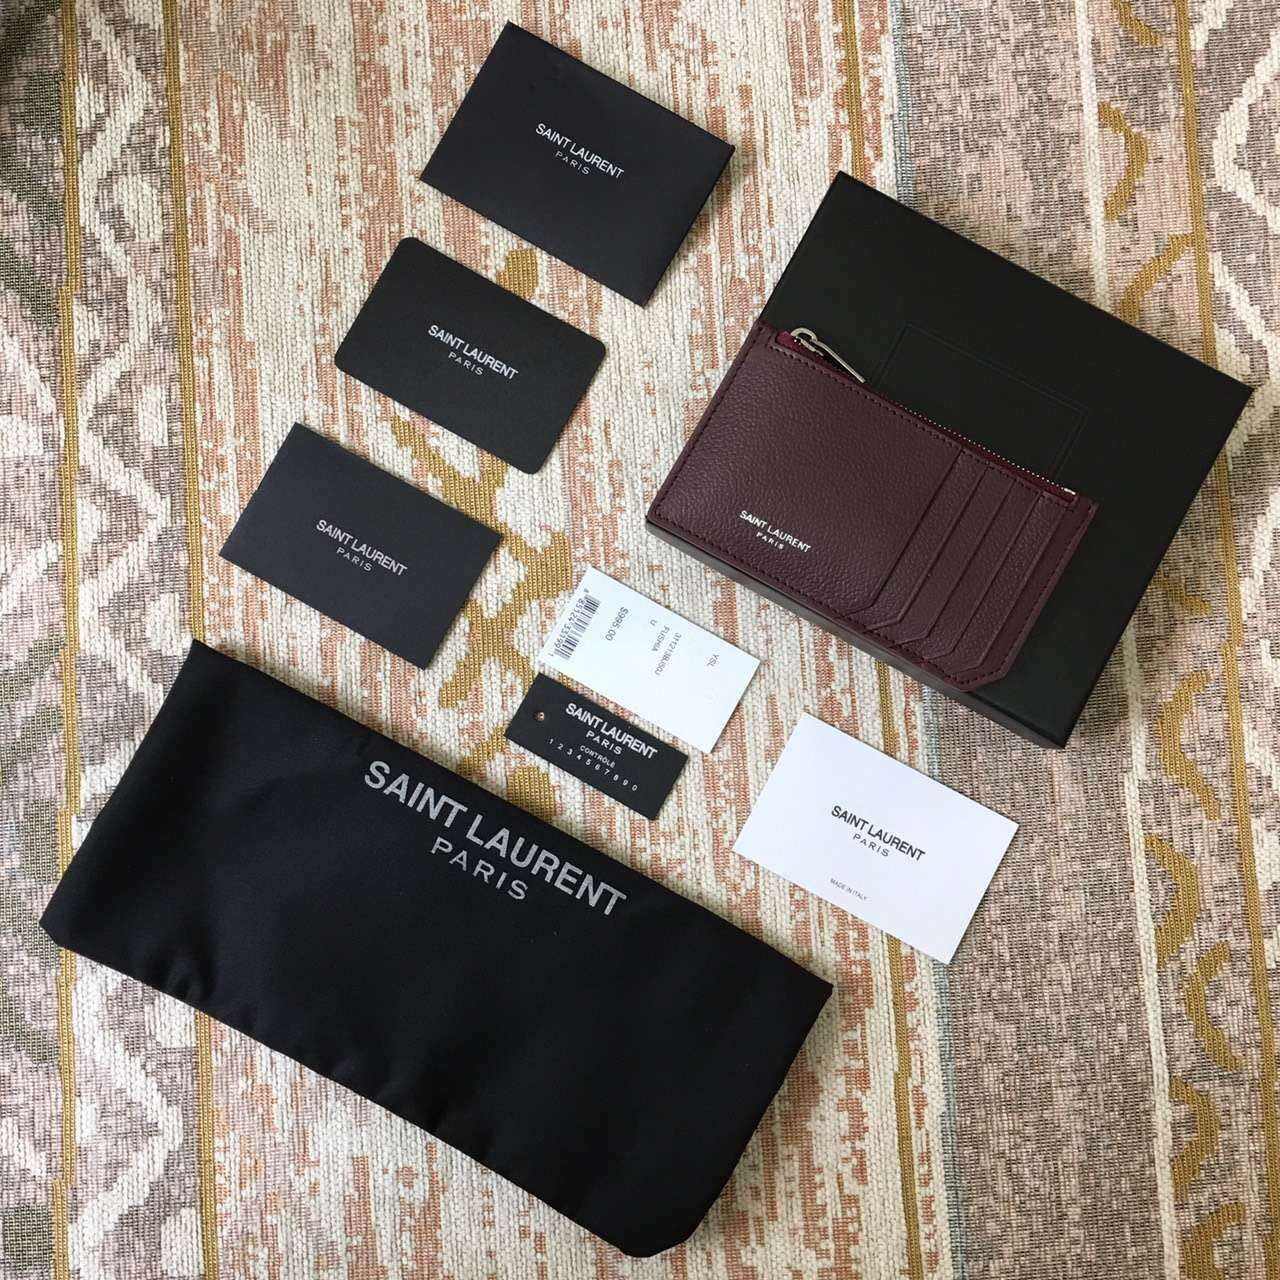 Limited Edition!2016 New Saint Laurent Small Leather Goods Cheap Sale-Saint Laurent Classic Paris 5 Fragments Zip Pouch in Bordeaux Leather